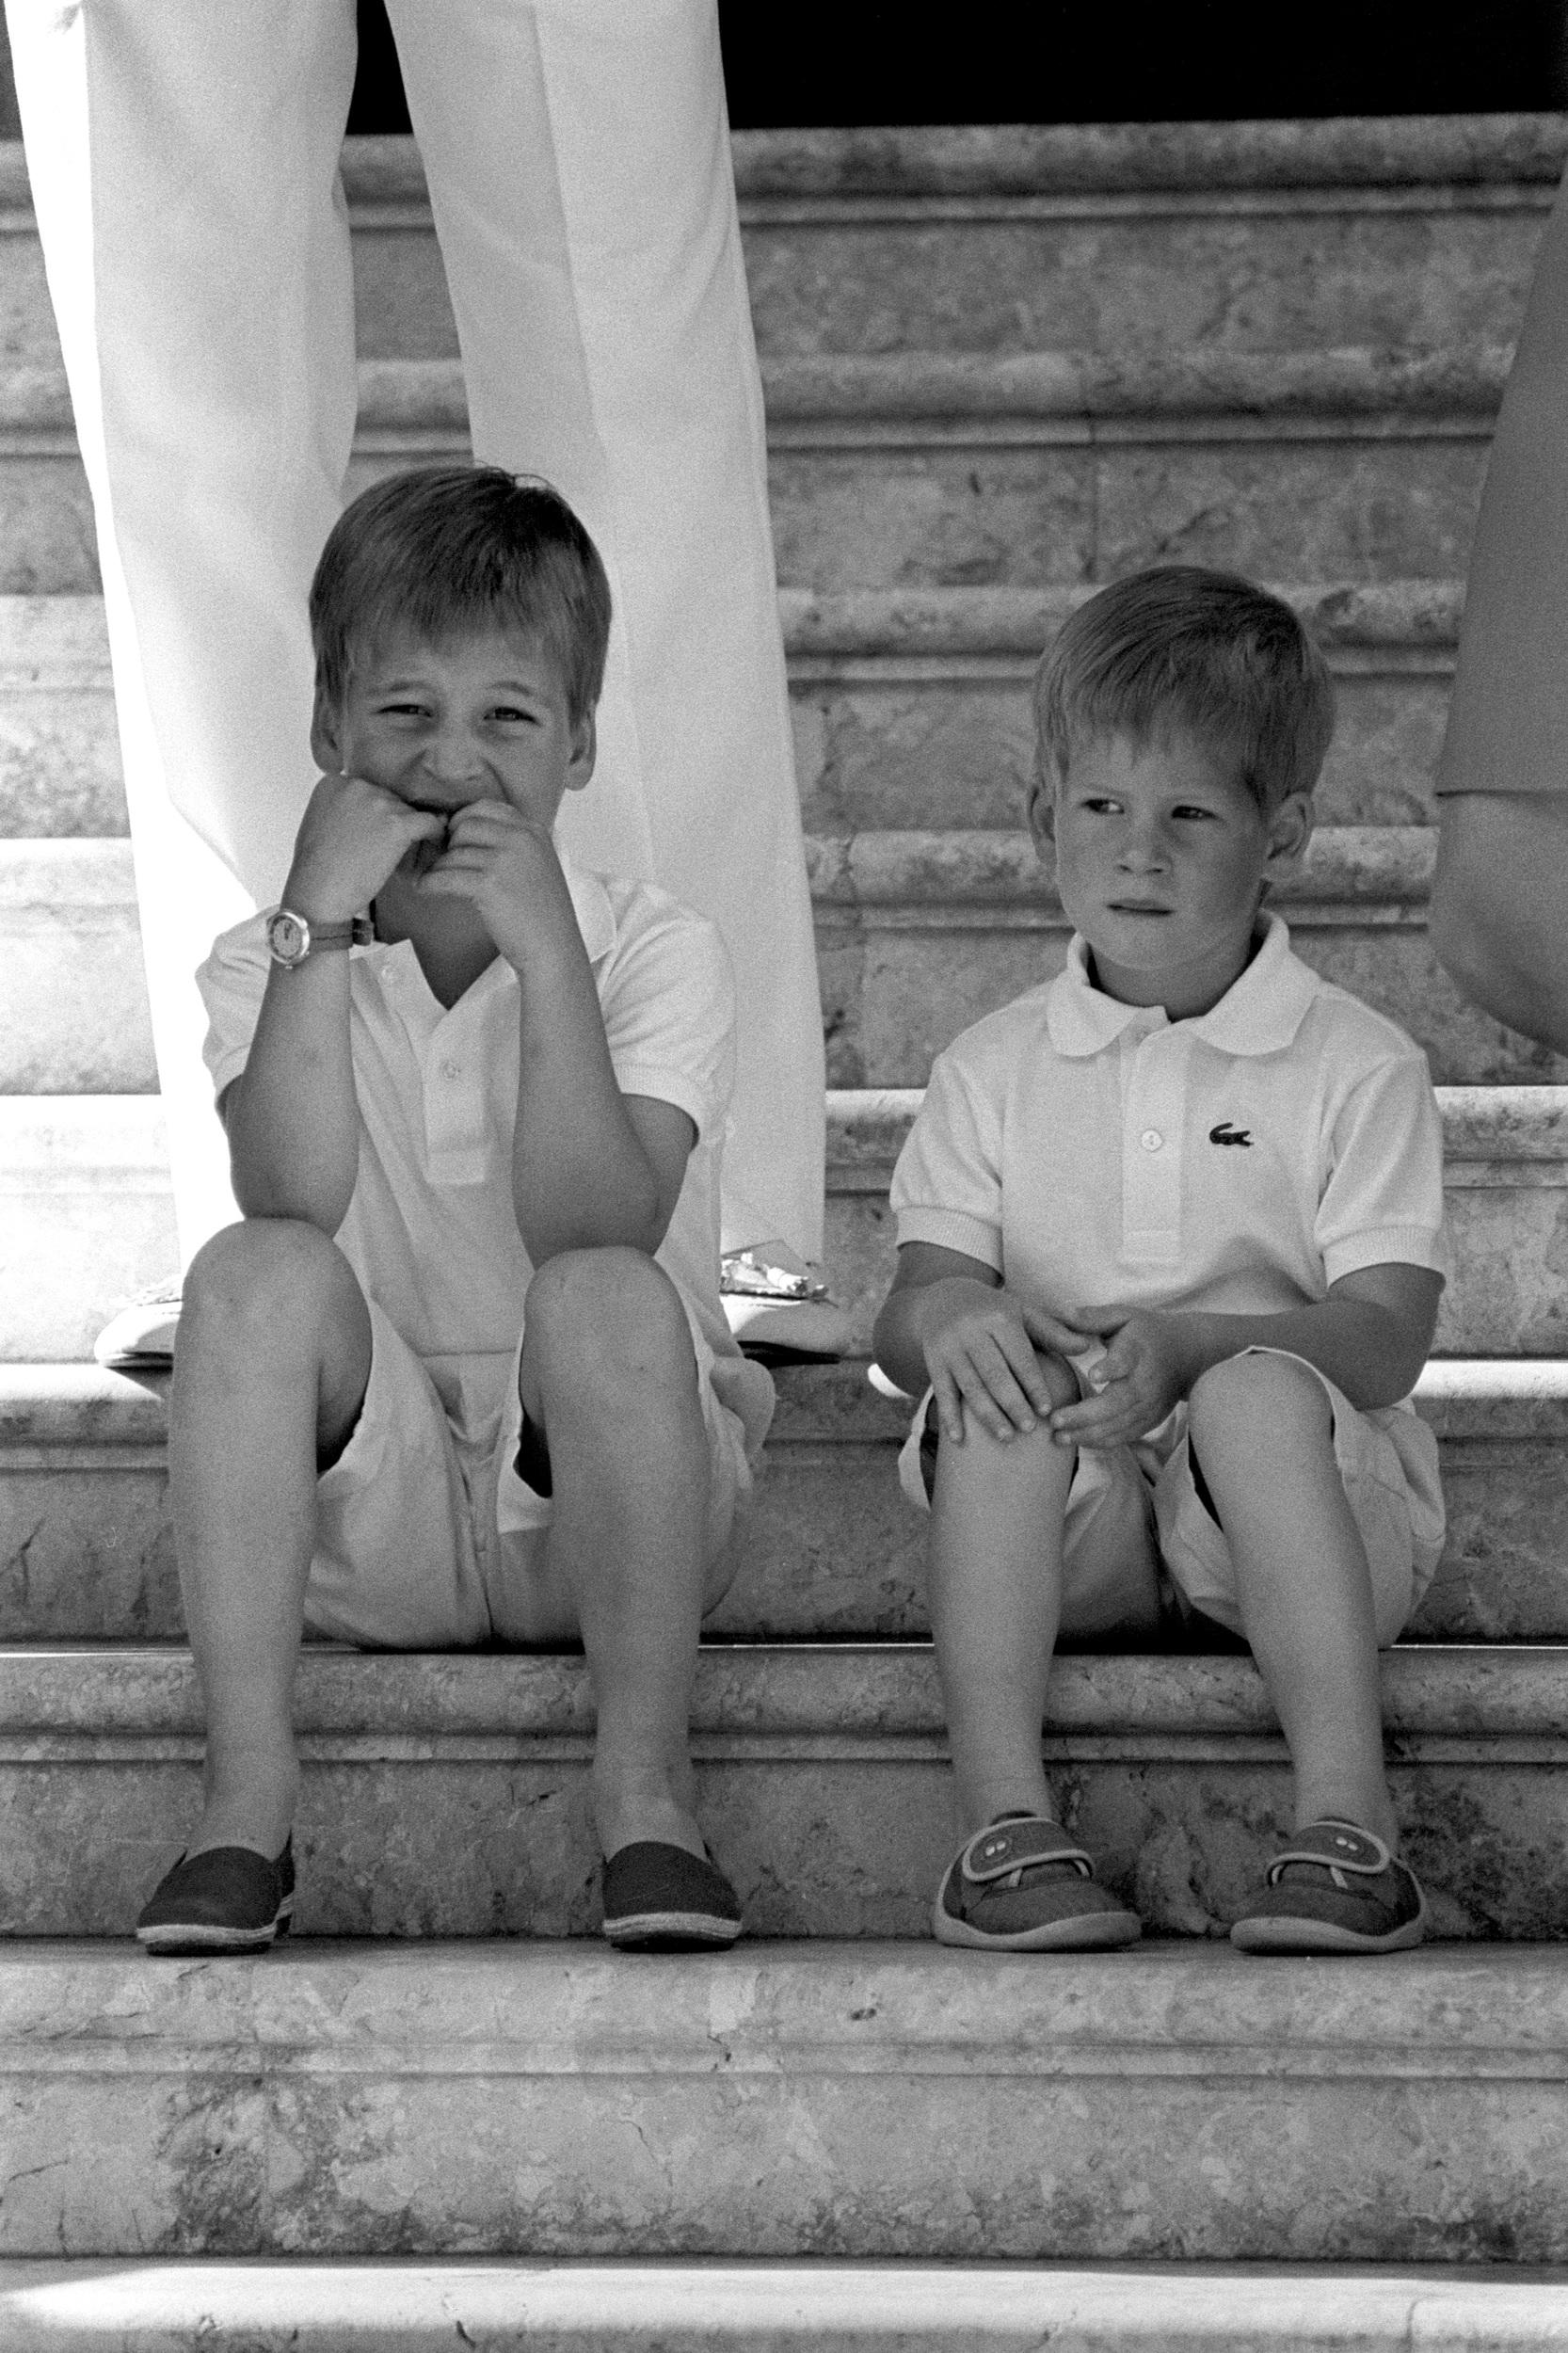 SIX YEAR OLD PRINCE WILLIAM (LEFT) AND HIS BROTHER PRINCE HARRY, 3, SITTING ON THE STEPS OF MARIVANT PALACE IN PALMA, MAJORCA. THE YOUNG PRINCES AND THEIR PARENTS, THE PRINCE AND PRINCESS OF WALES, WERE ON THEIR ANNUAL HOLIDAY WITH KING JUAN CARLOS OF SPAIN.   (Photo by Ron Bell - PA Images/PA Images via Getty Images)